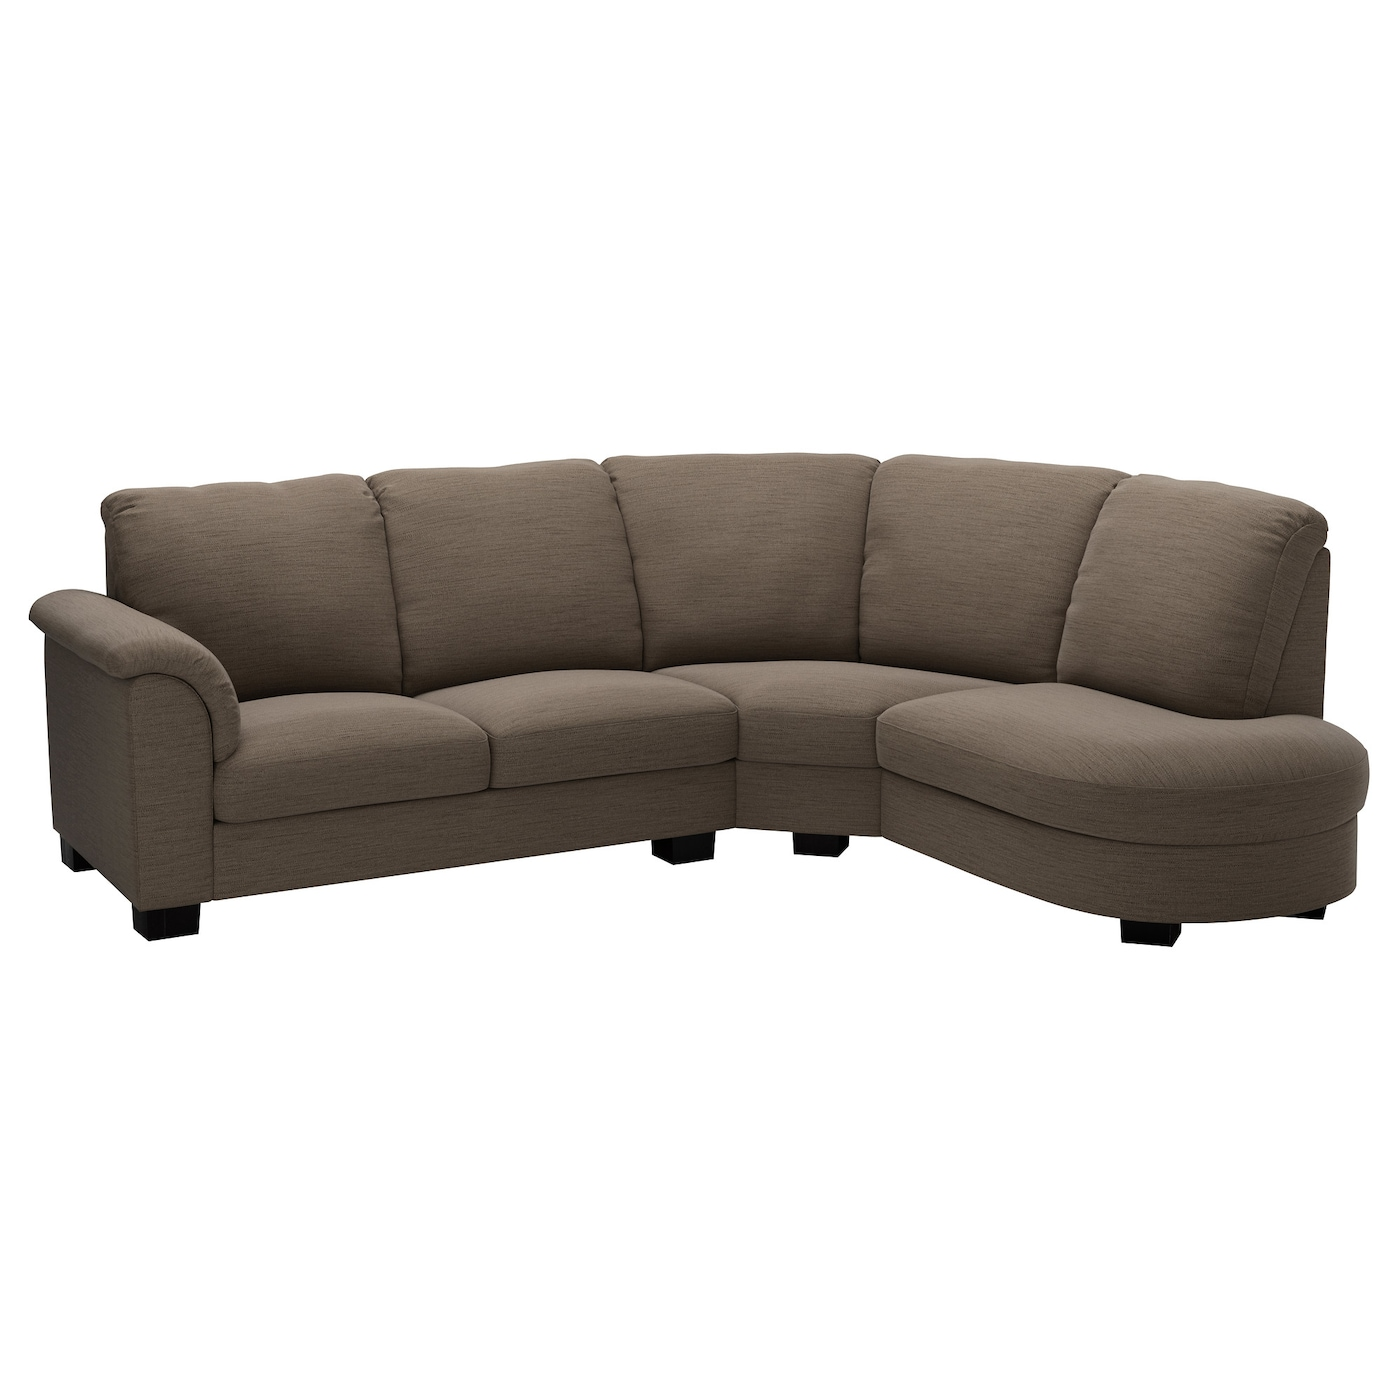 Tidafors corner sofa with arm left hensta light brown ikea for Canape angle ikea